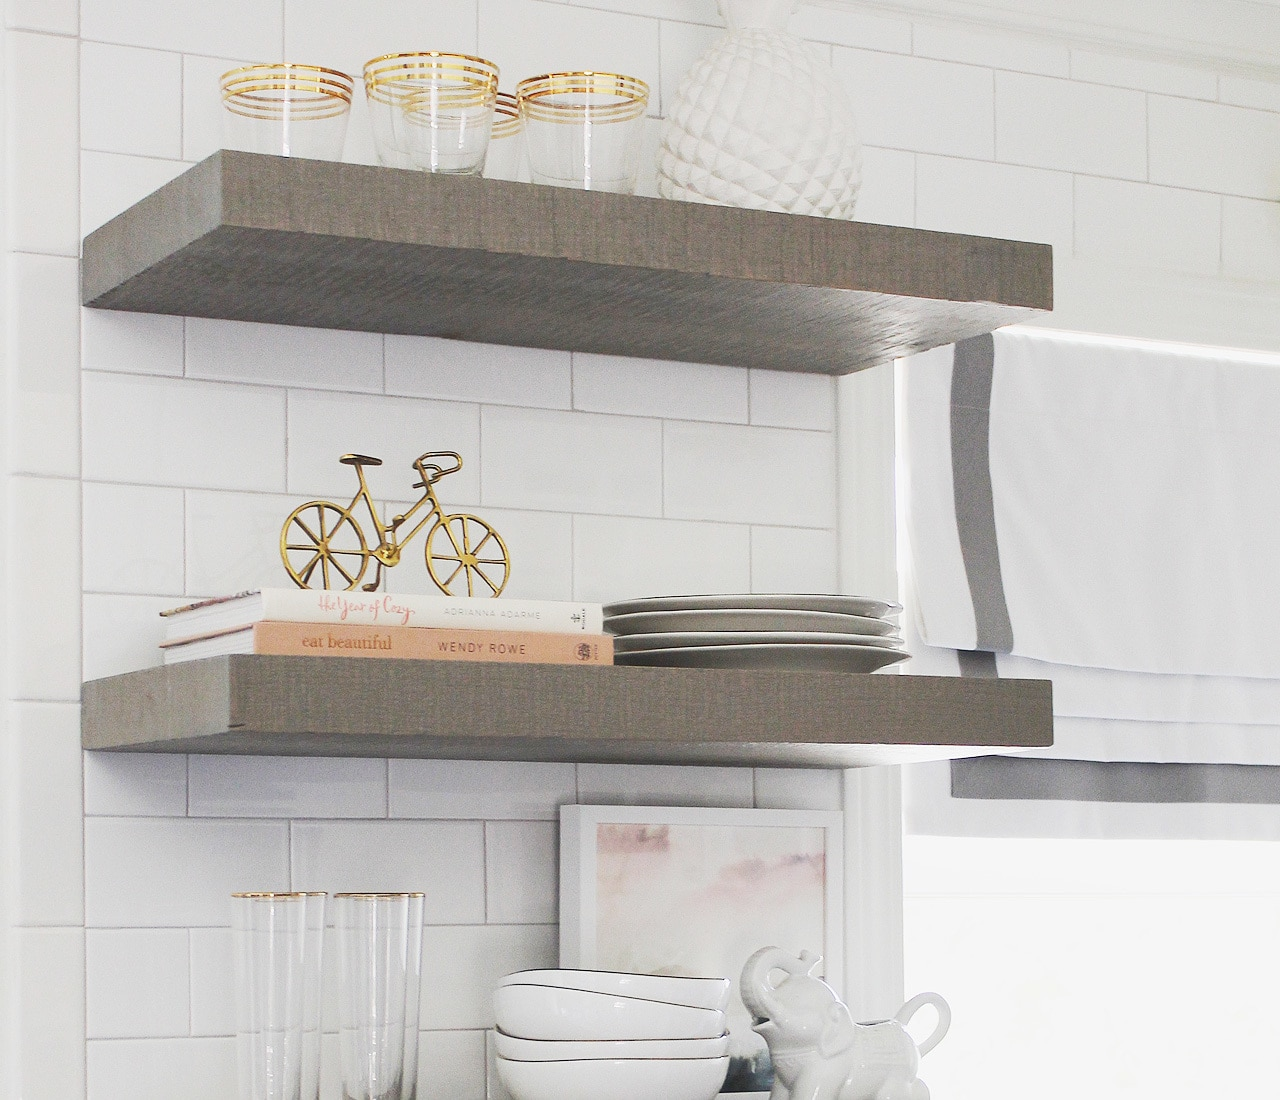 floating shelf bracket fits inch shelves gray kitchen light wall with brackets easily install our steel storage furniture french cleat system secret safe replace vinyl floor tile